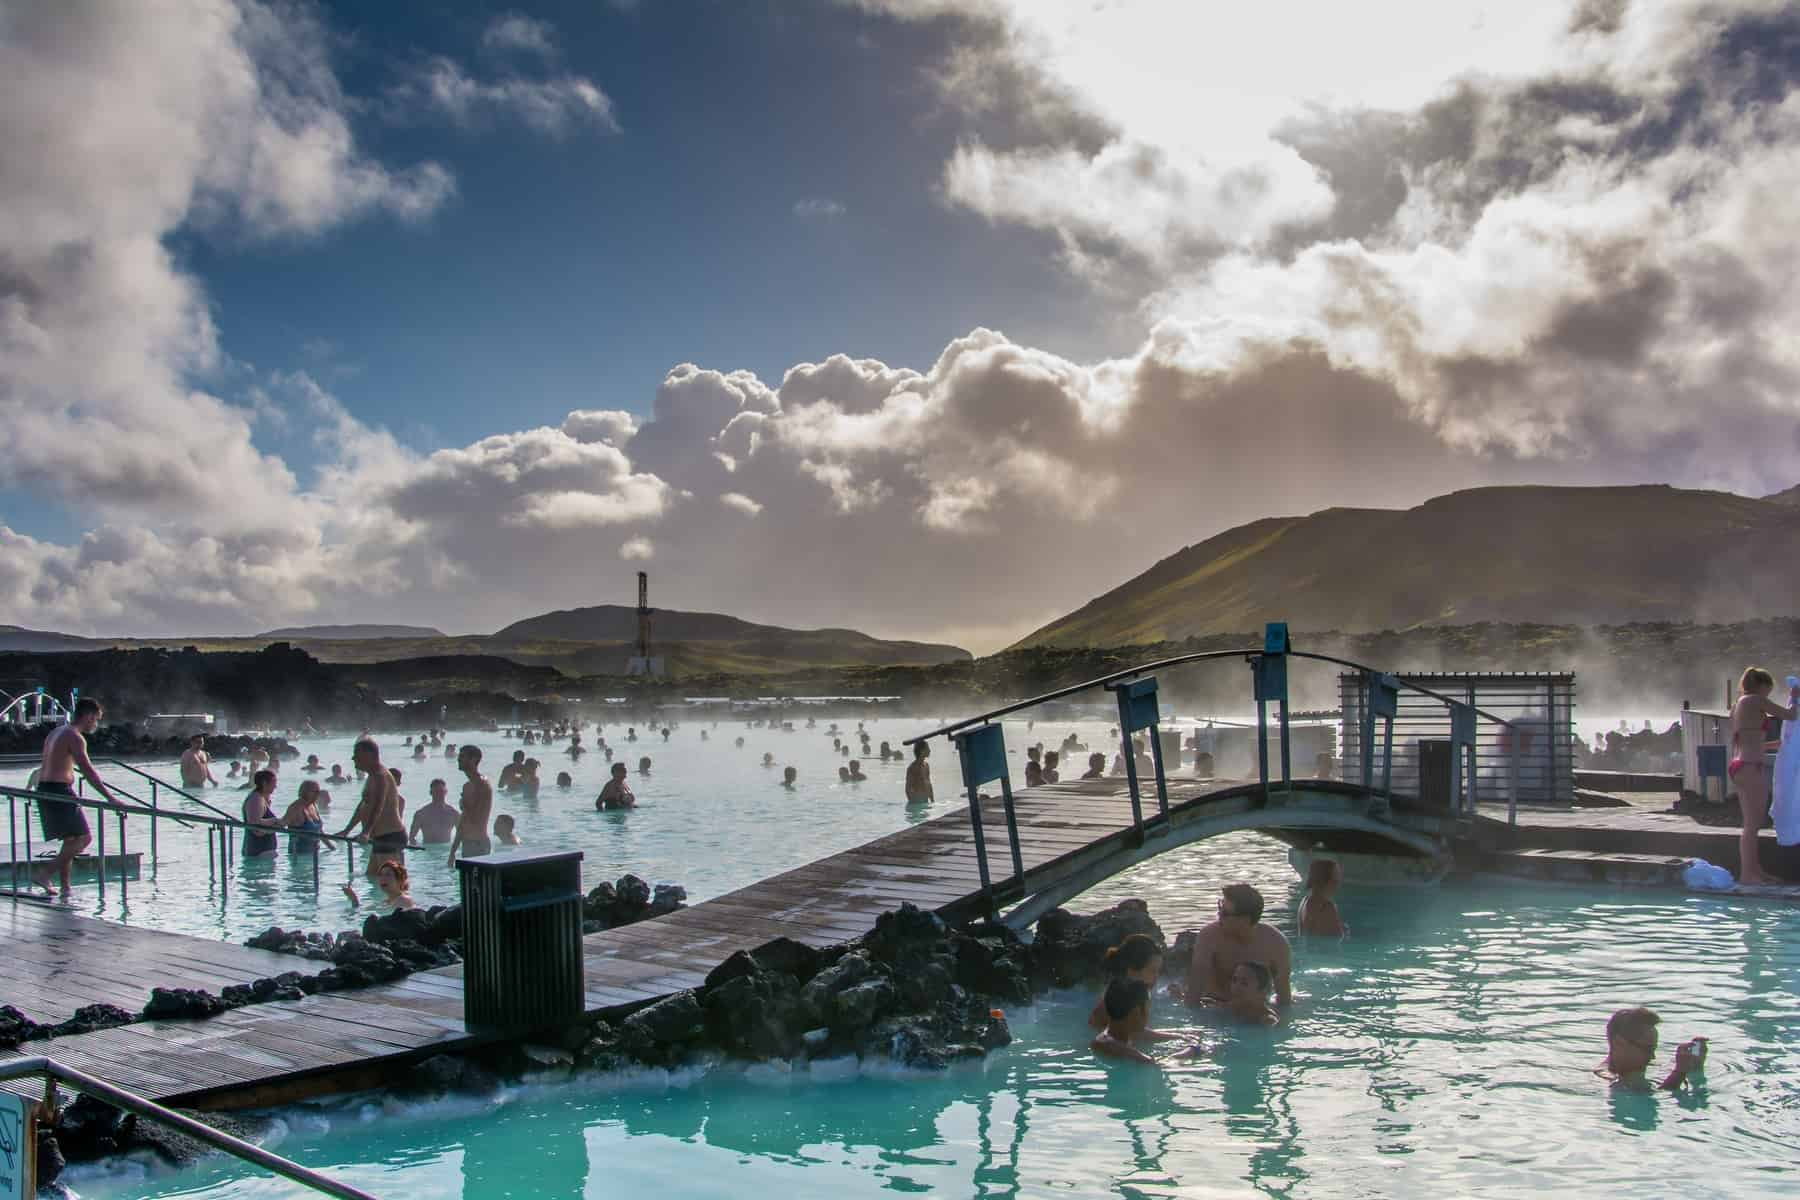 the Blue Lagoon bridge in early morning in Iceland